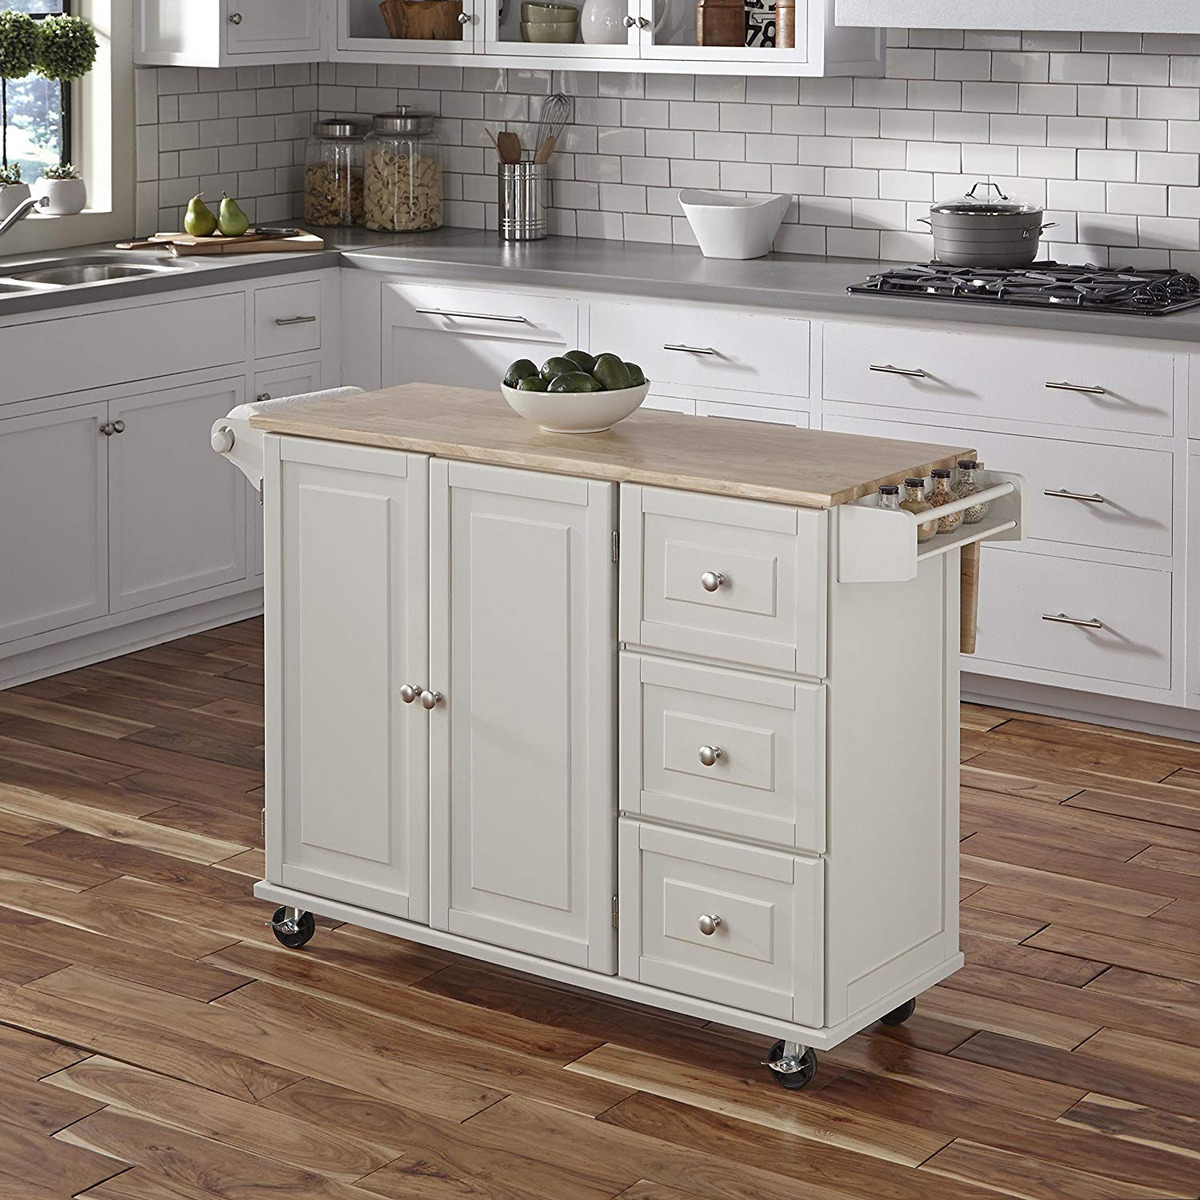 10 Best Best Kitchen Carts And Islands 2019 | The Strategist Intended For Newest Elworth Kitchen Island (View 6 of 25)